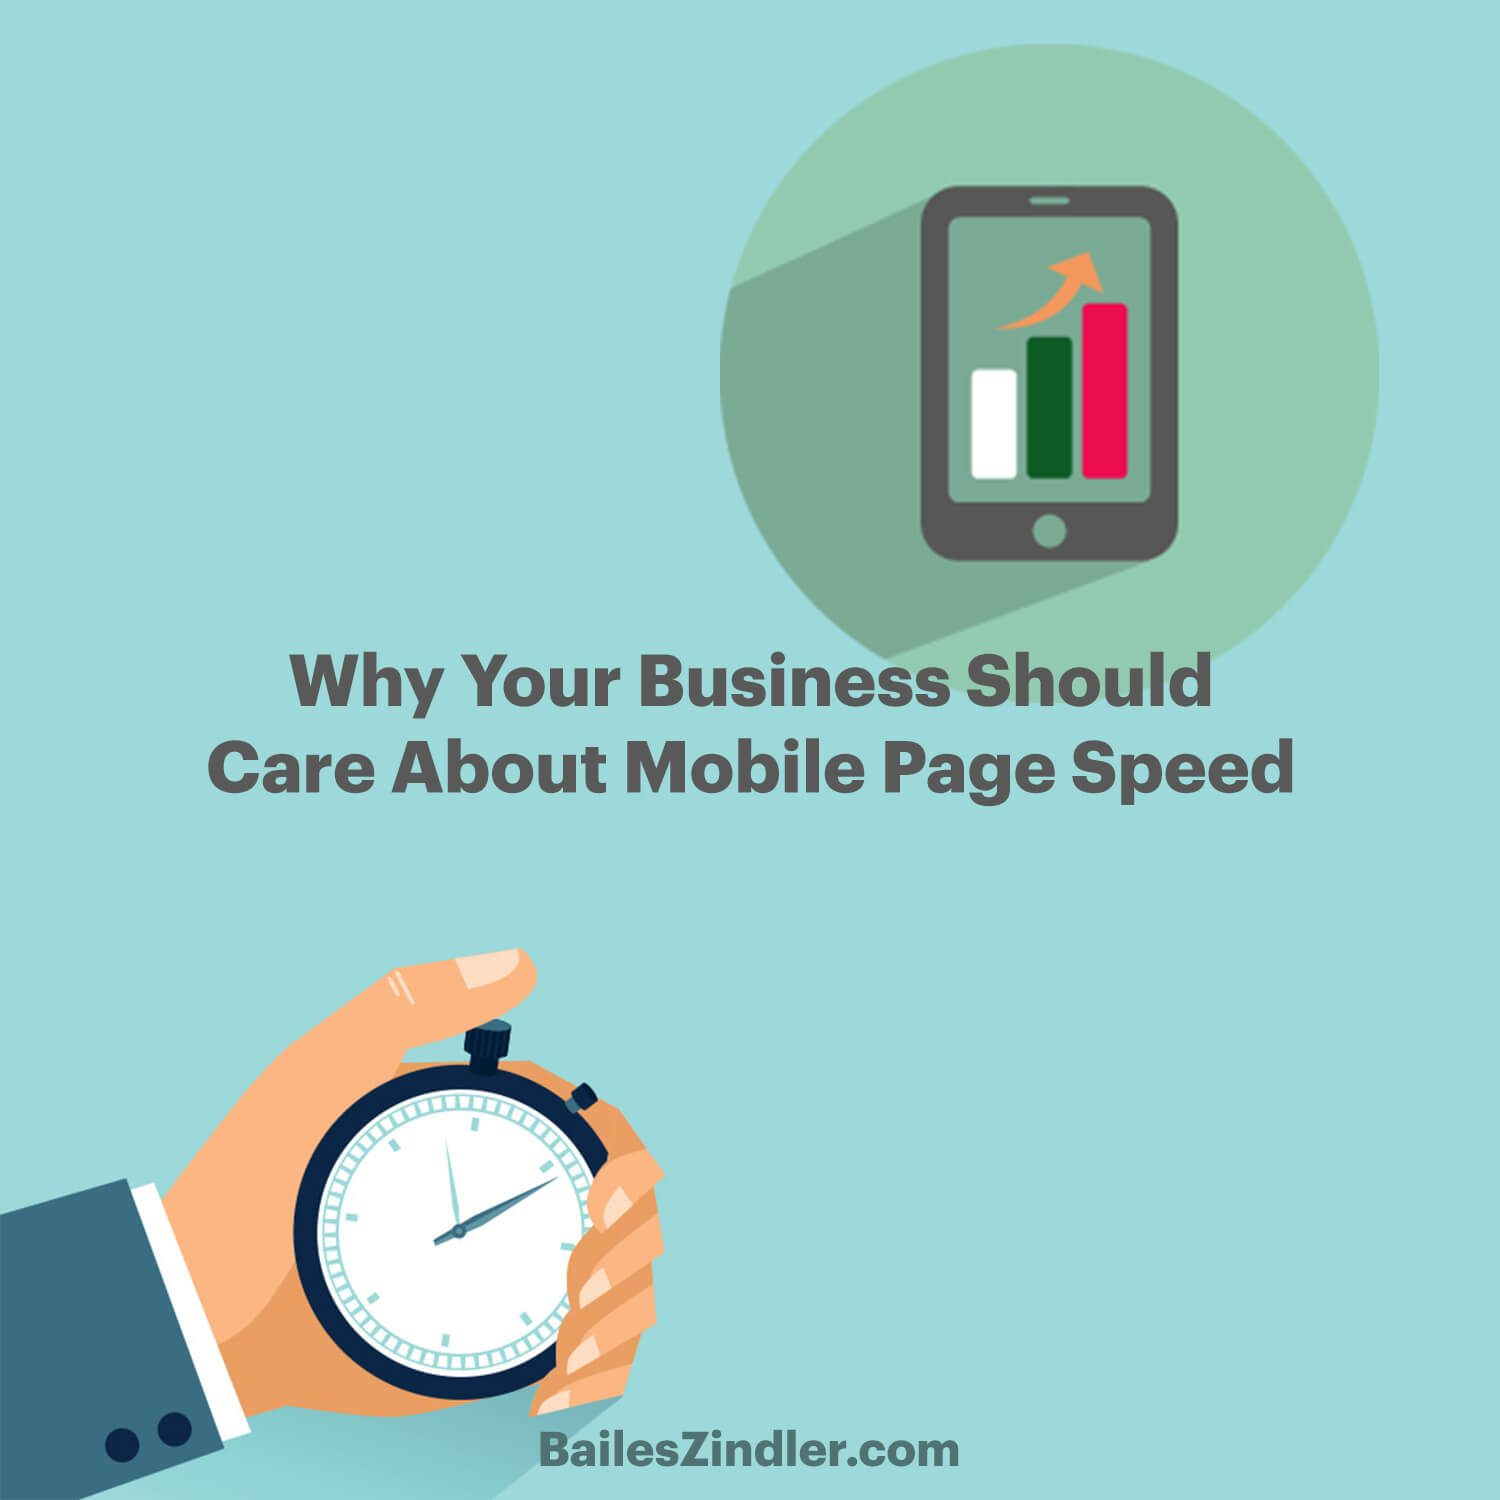 Why Your Business Should Care About Mobile Page Speed